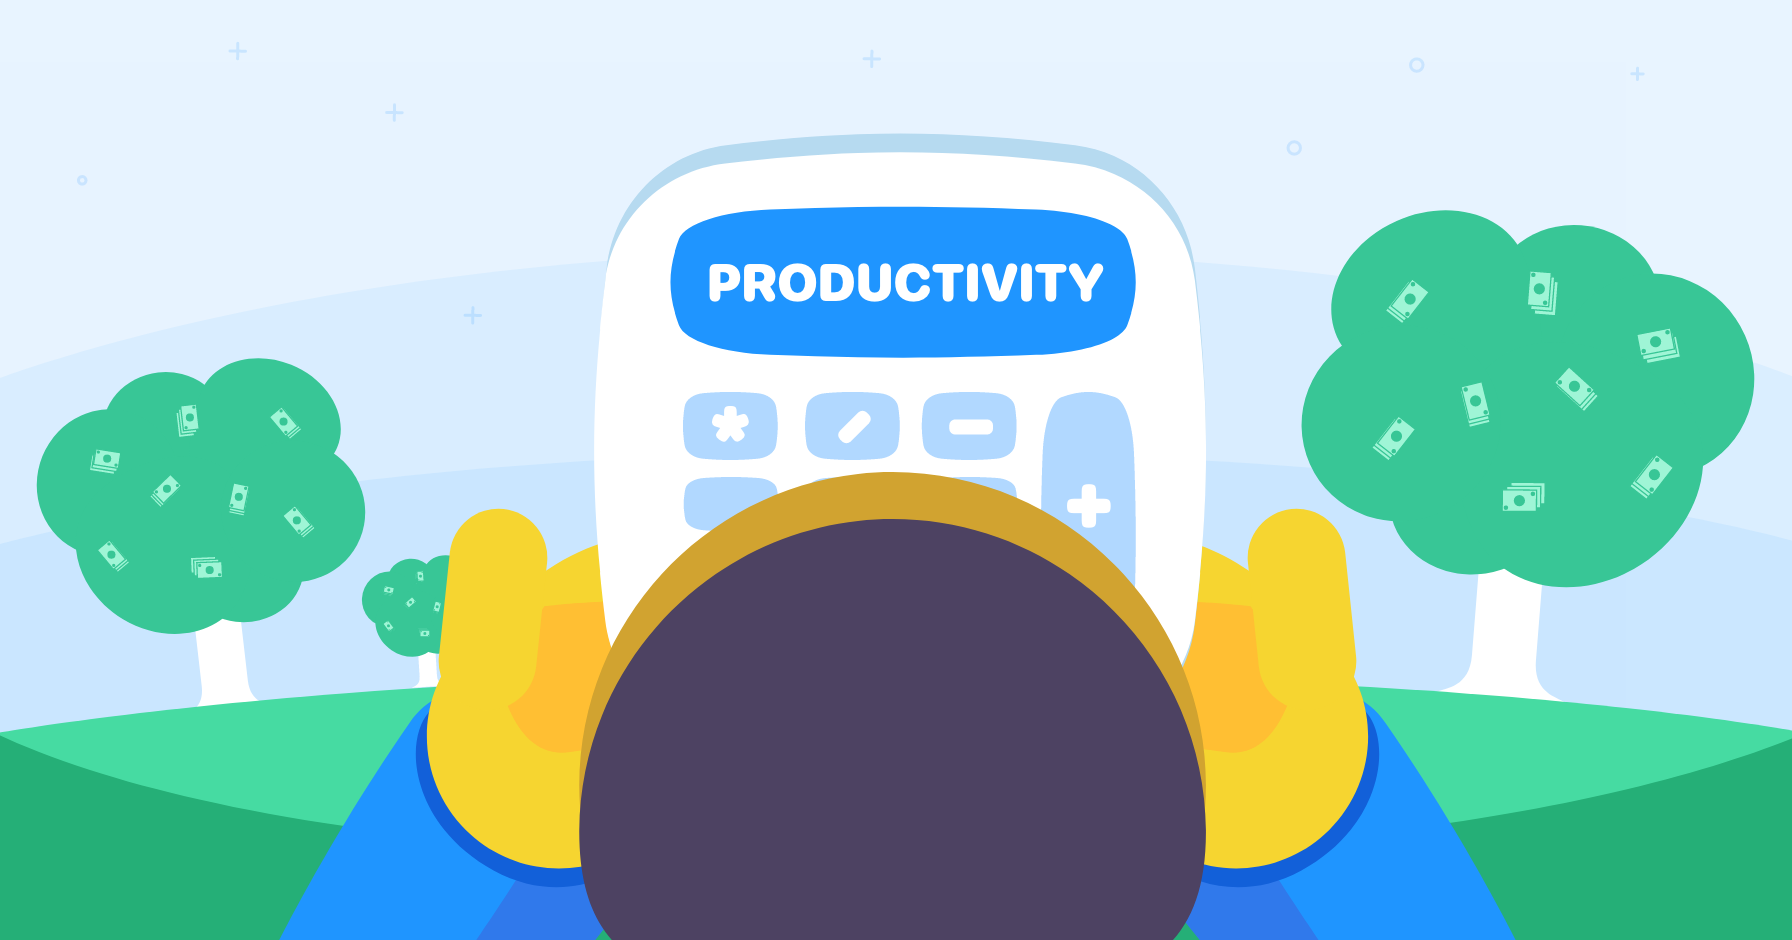 Productivity calculator